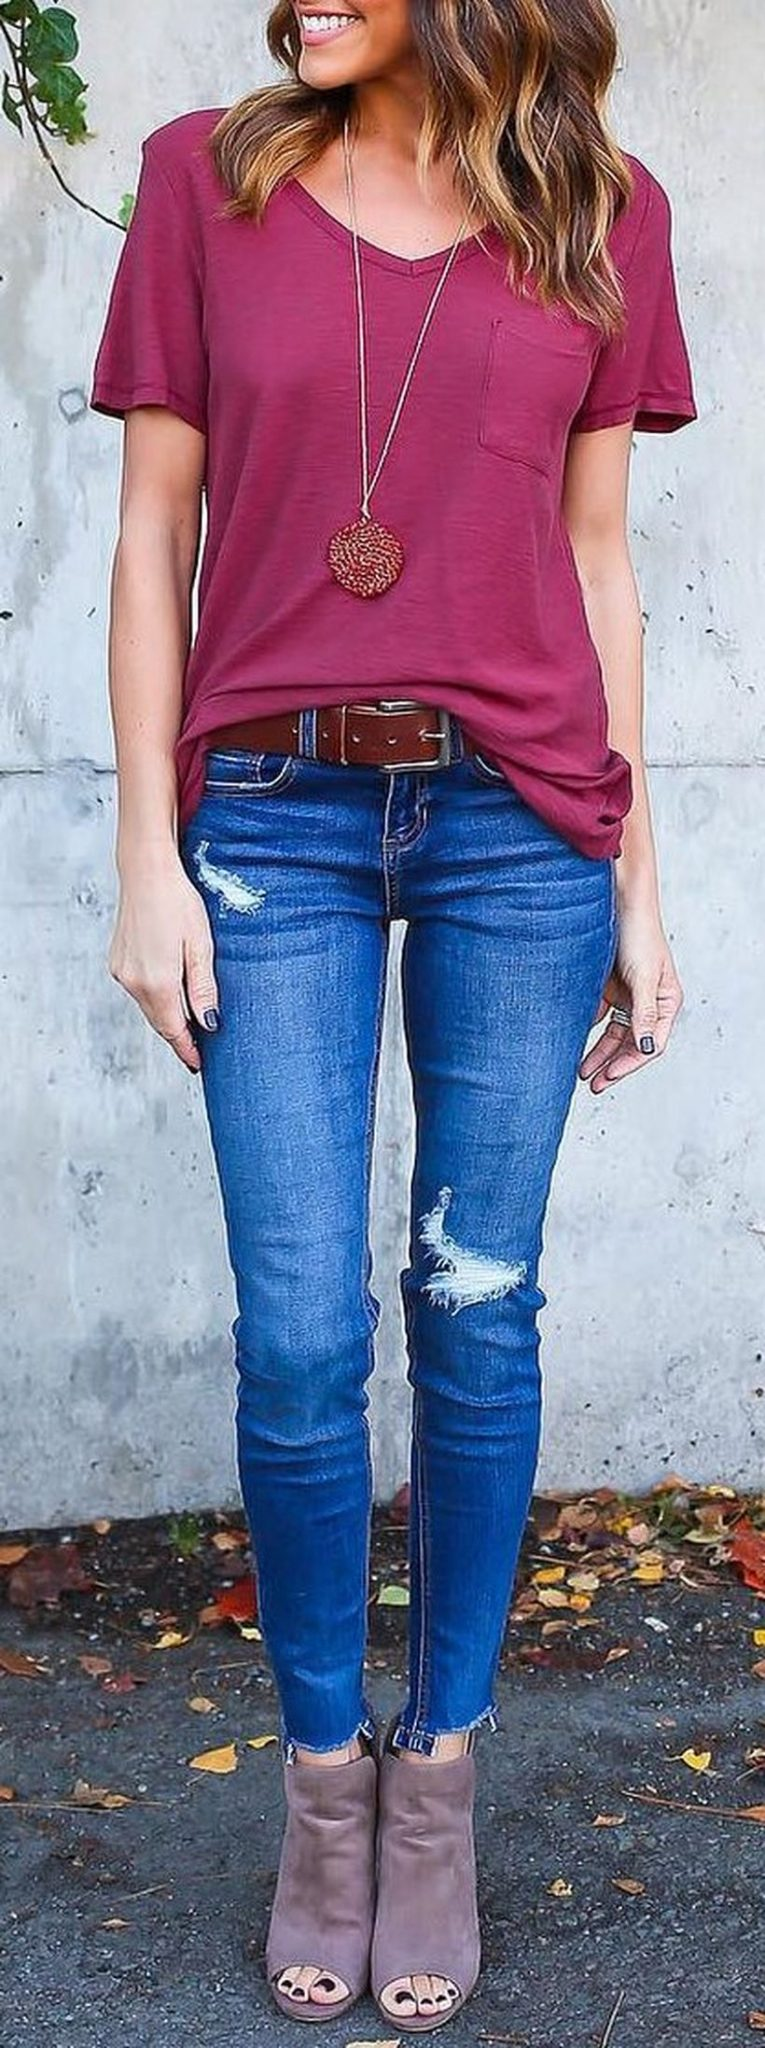 Casual fall fashions trend inspirations 2017 56 - Fashion Best